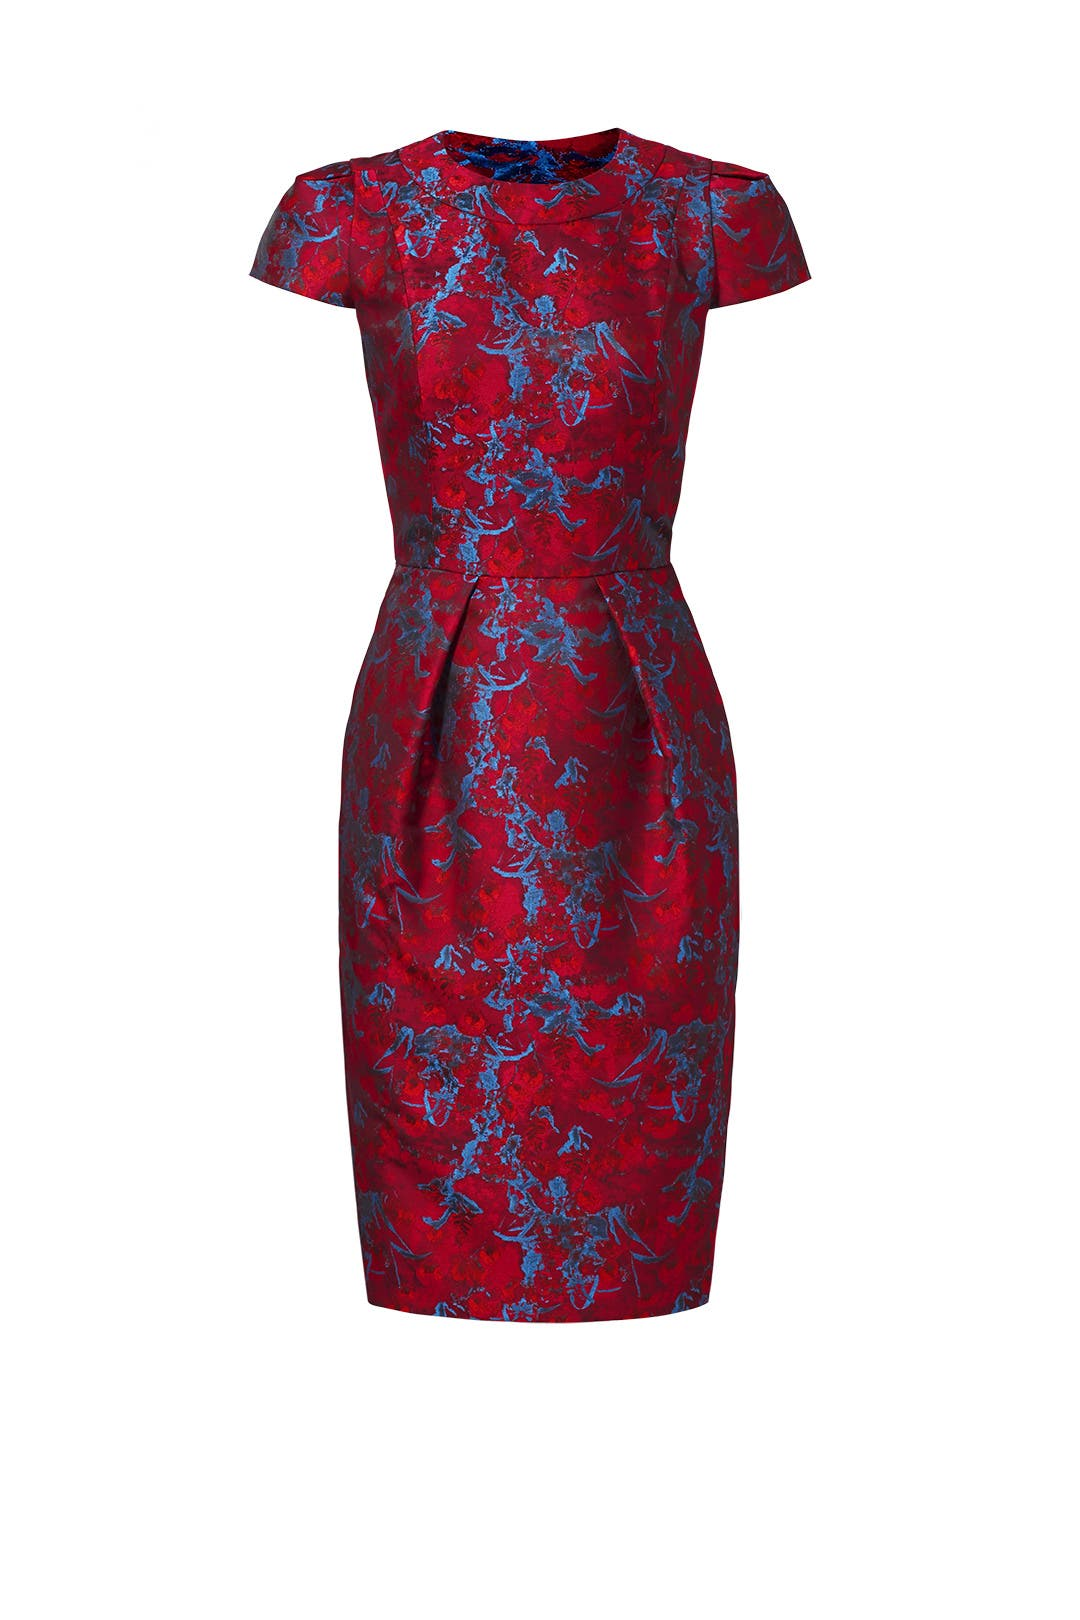 Cranberry Jacquard Dress by Carmen Marc Valvo for $70 - $90 | Rent ...